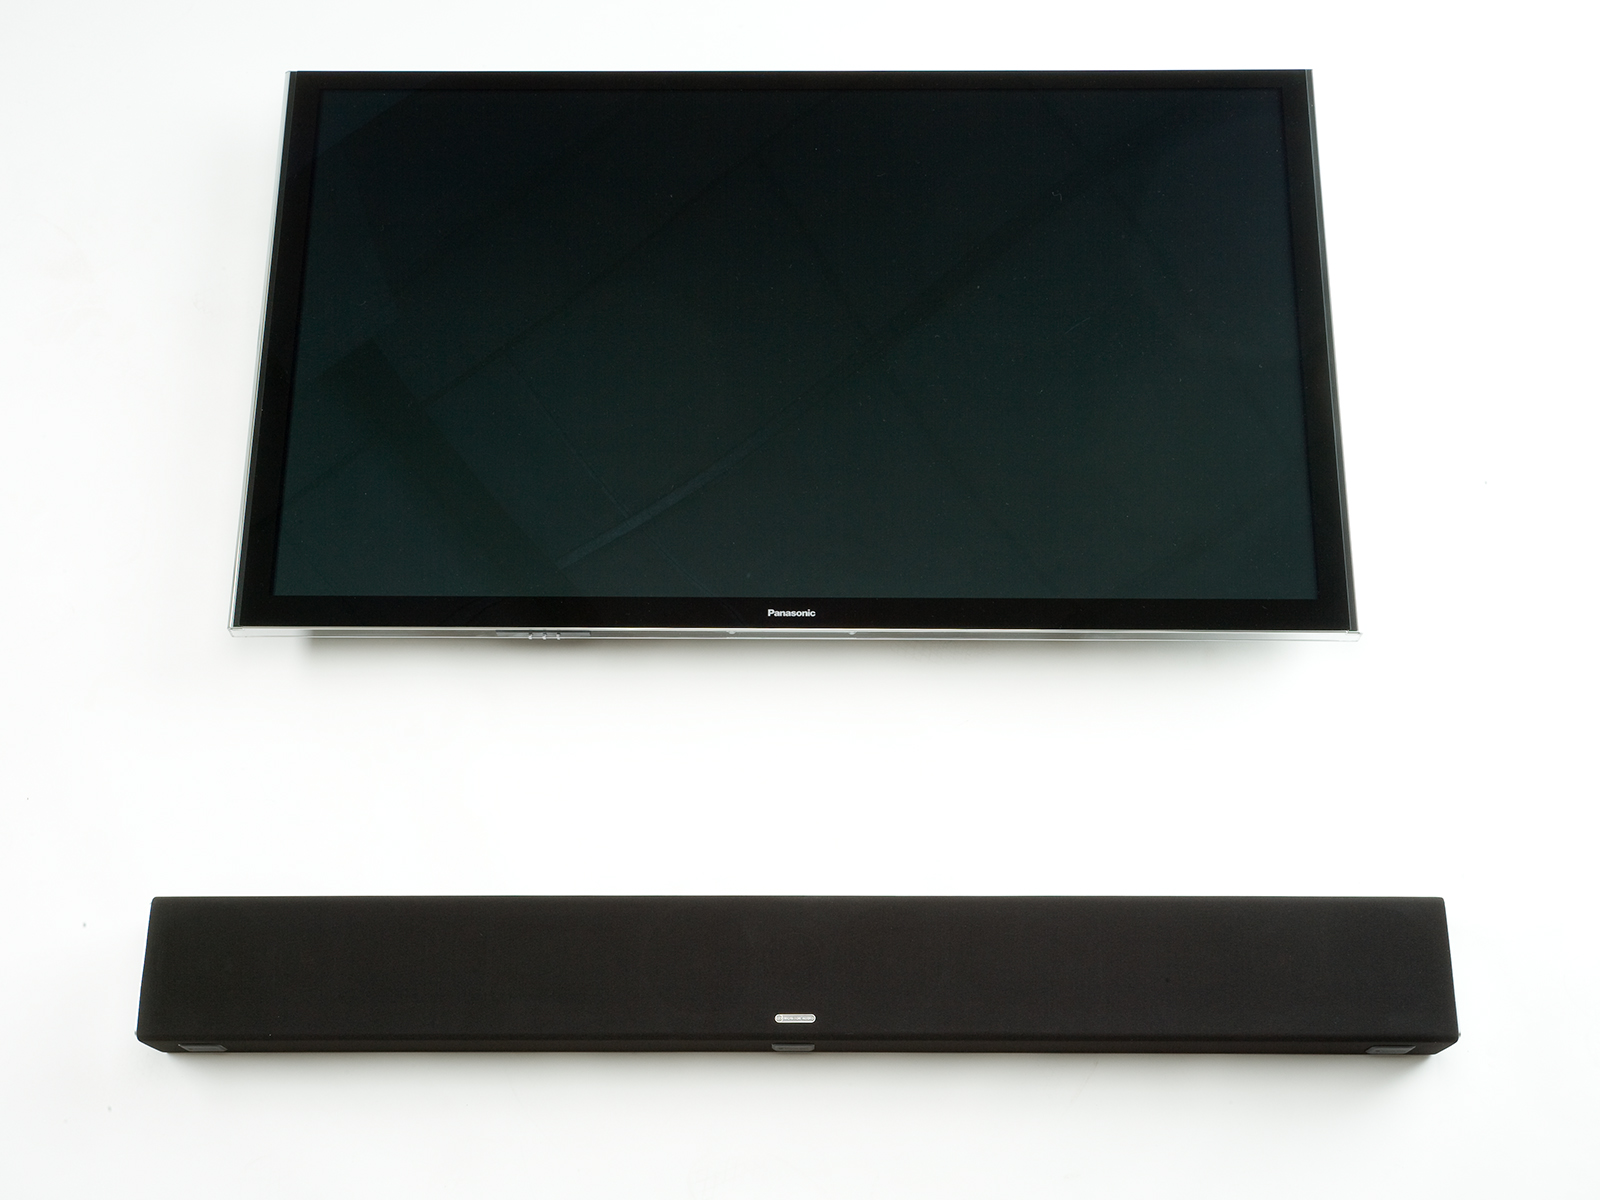 SB-3, passive soundbar speaker, with TV on a black cloth grille.